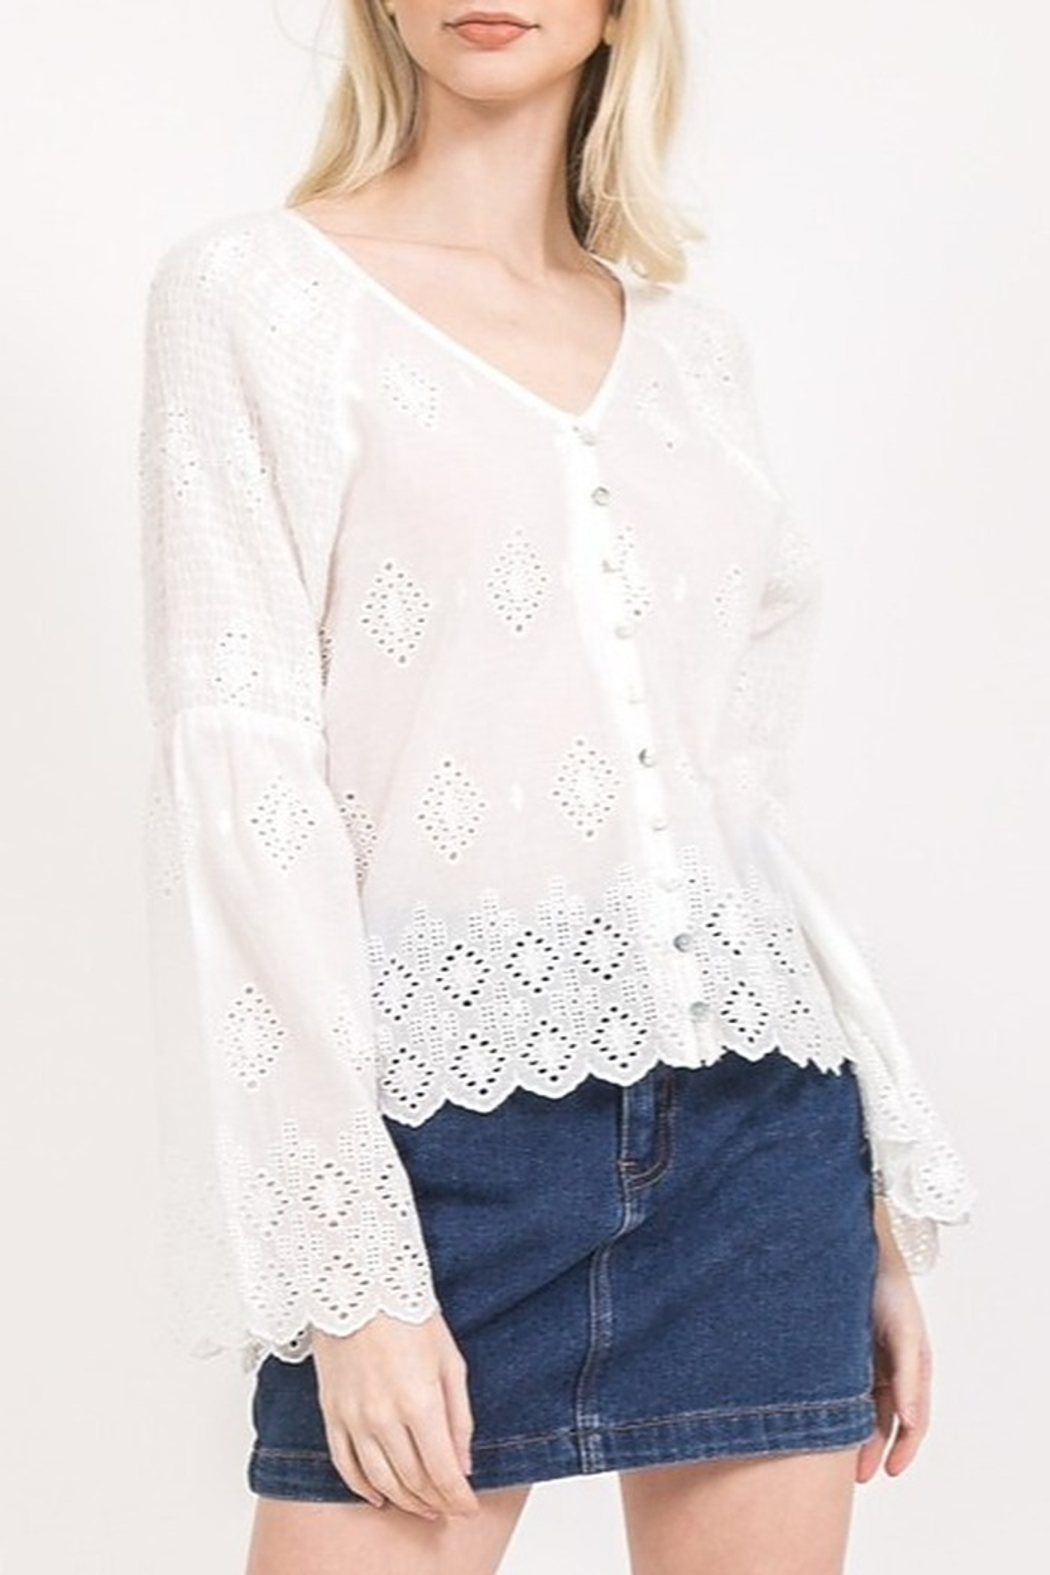 Very J Eyelet Lace Blouse - Main Image